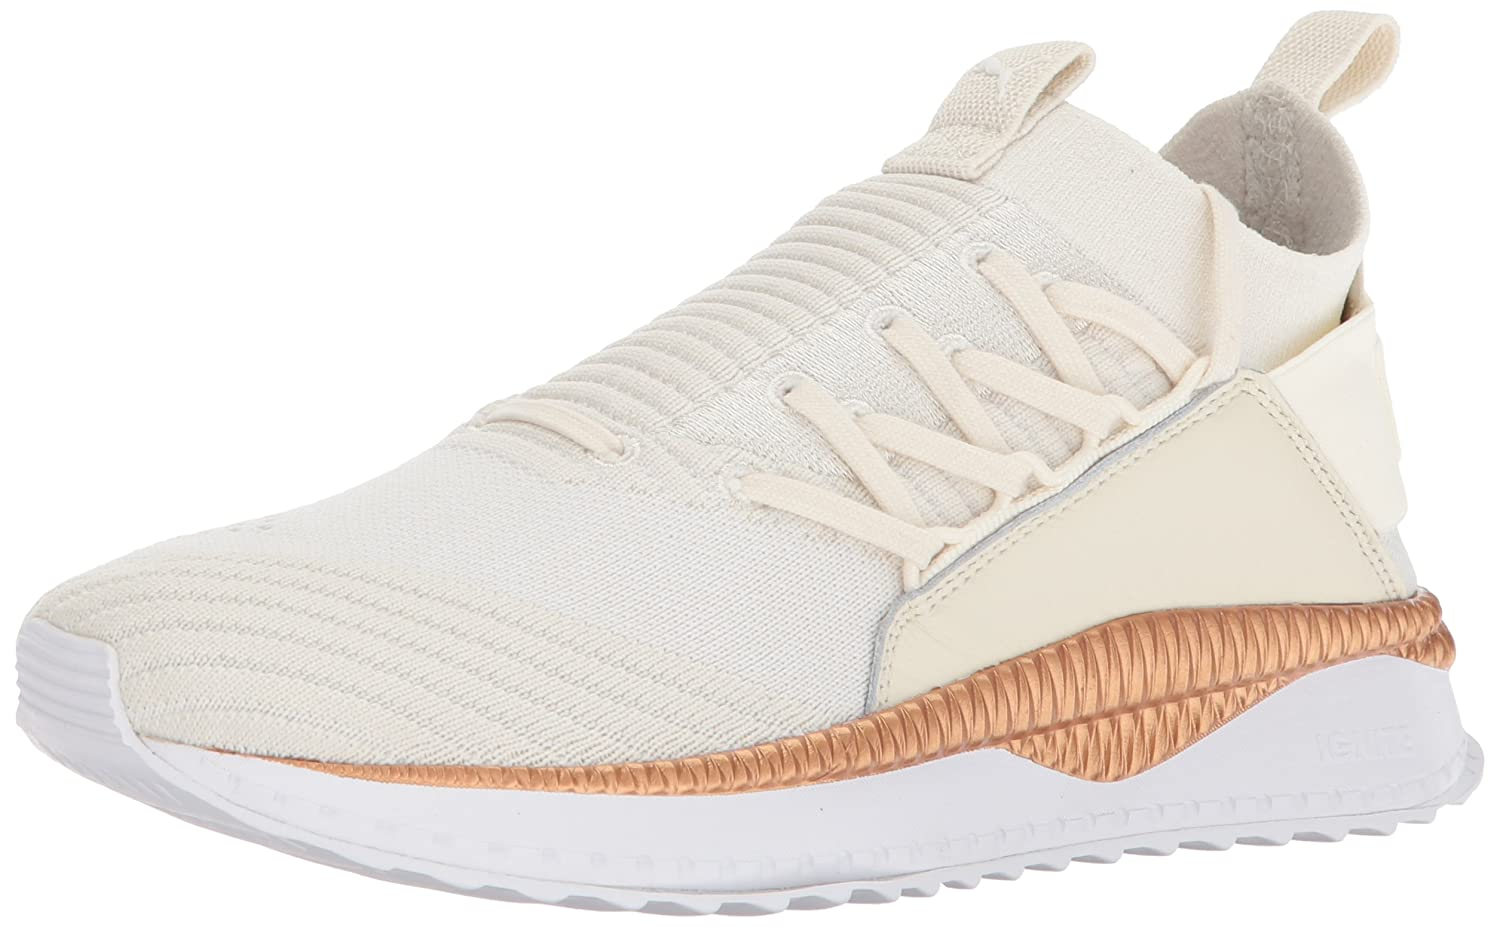 PUMA Women's Tsugi Jun WN's Sneaker B073WHKQDC 10 B(M) US|Whisper White-puma White-rose Gold